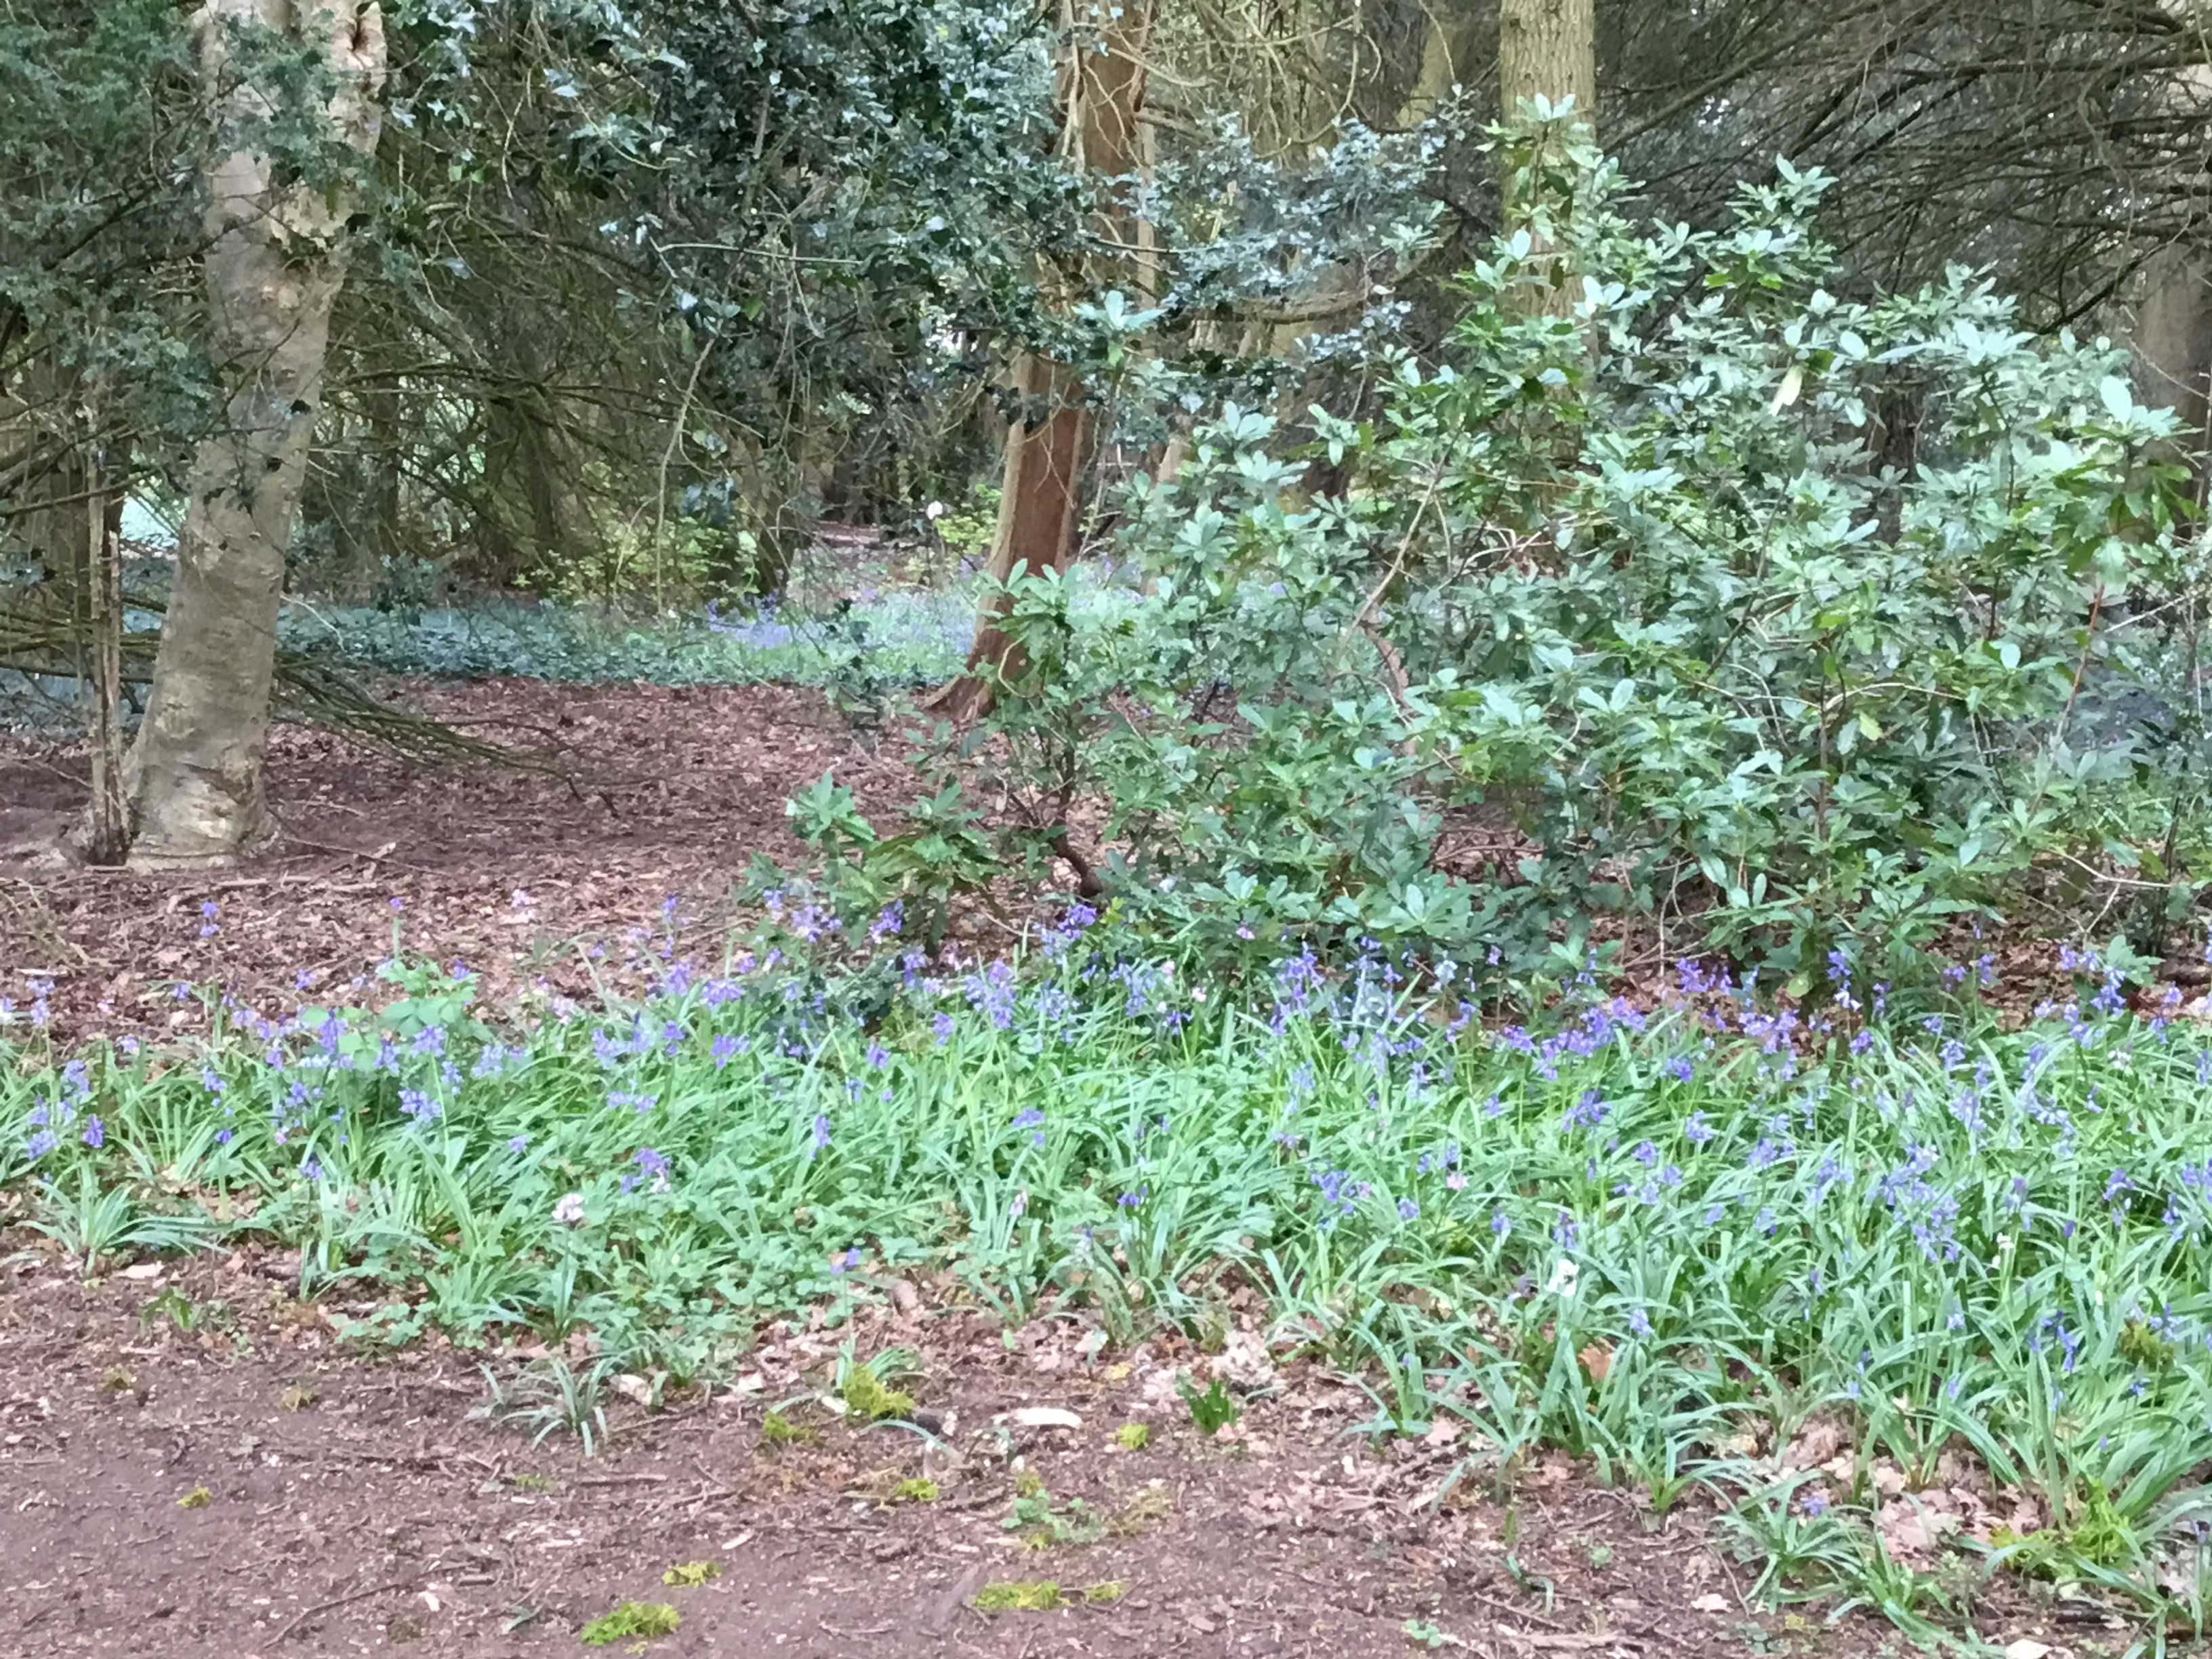 Bluebells at Caldeote